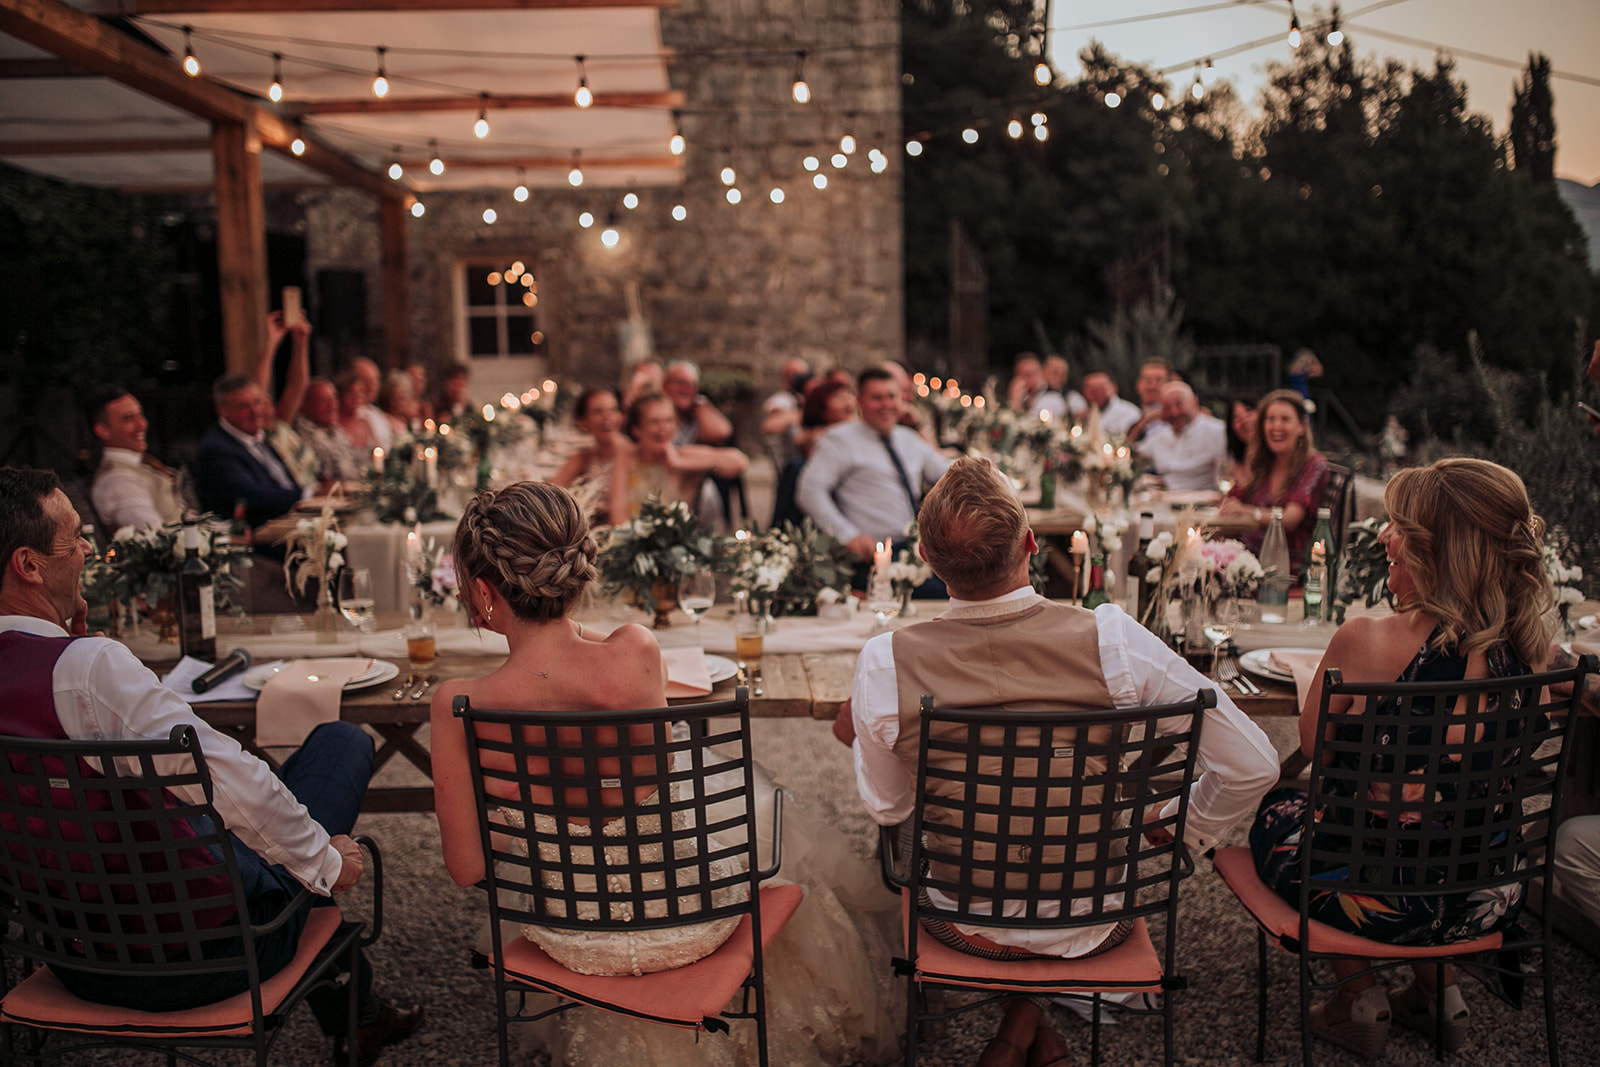 A lovely photo from a countryside wedding in Konavle, next to Dubrovnik. The whole scene looks like Tuscany. There are fairy lights above them and you can see a stone house in the background. Everyone is laughing together.